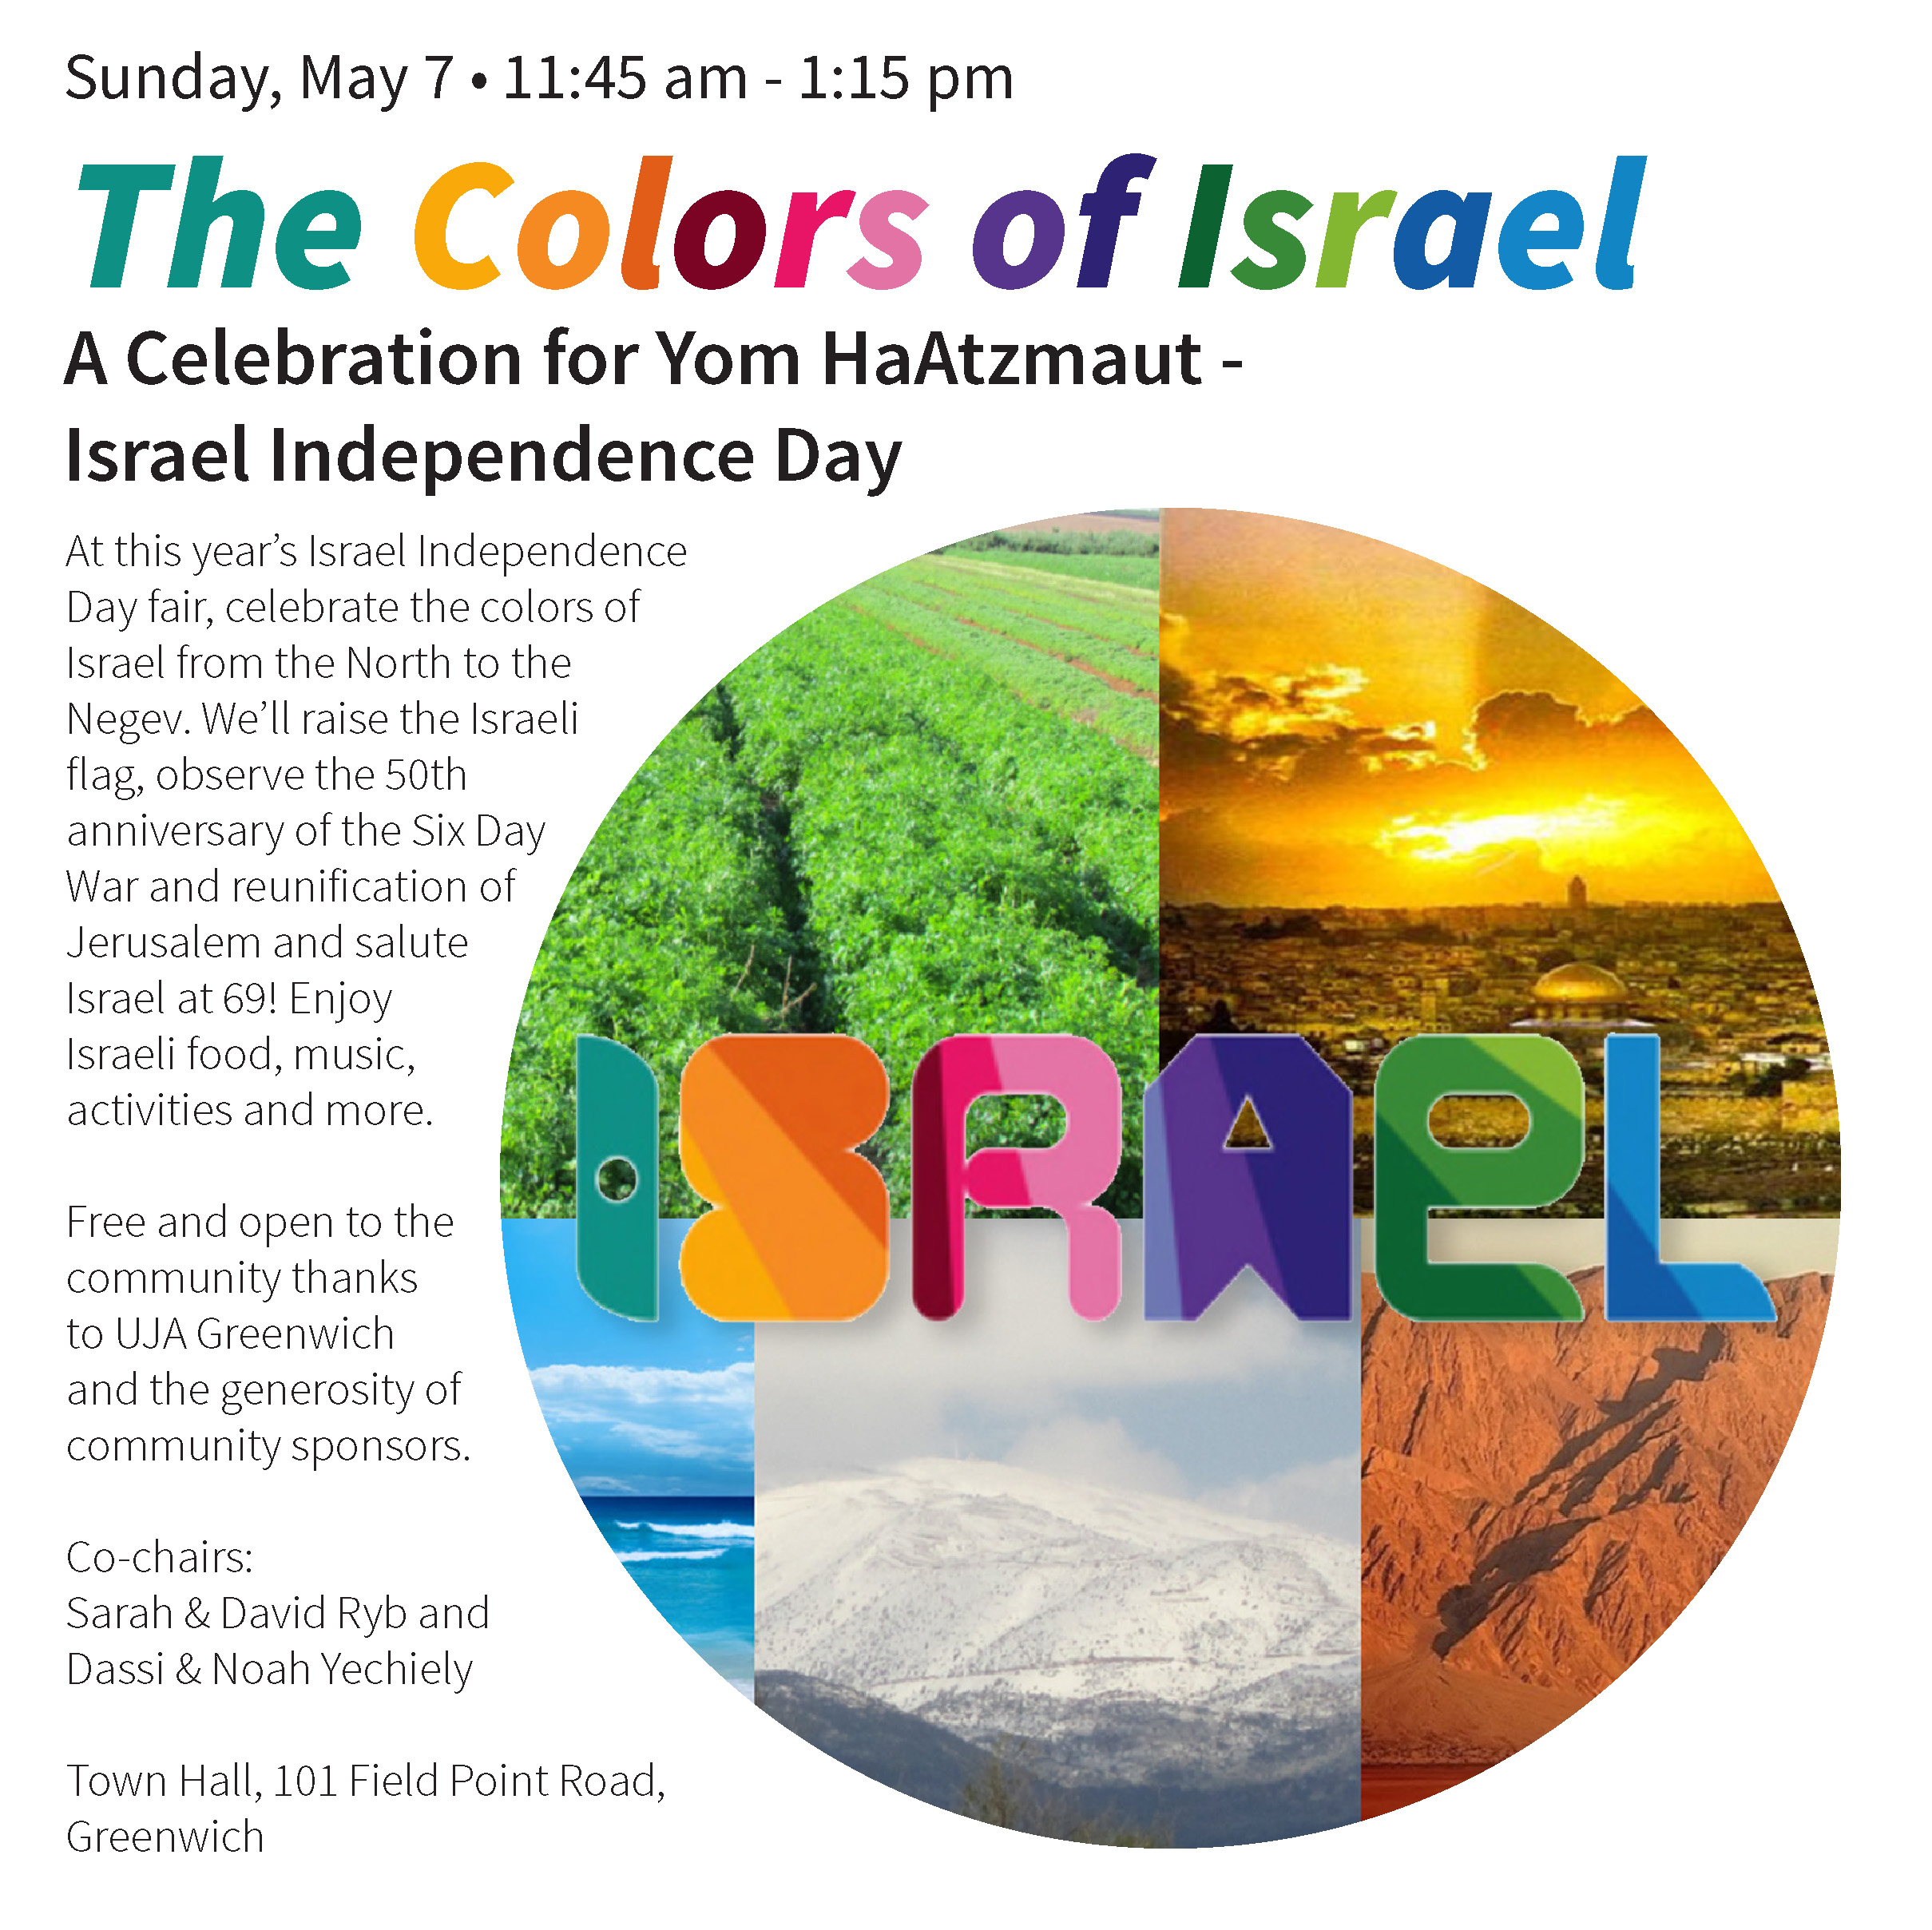 The Colors of Israel A Celebration for Yom HaAtzmaut - Israel Independence Day